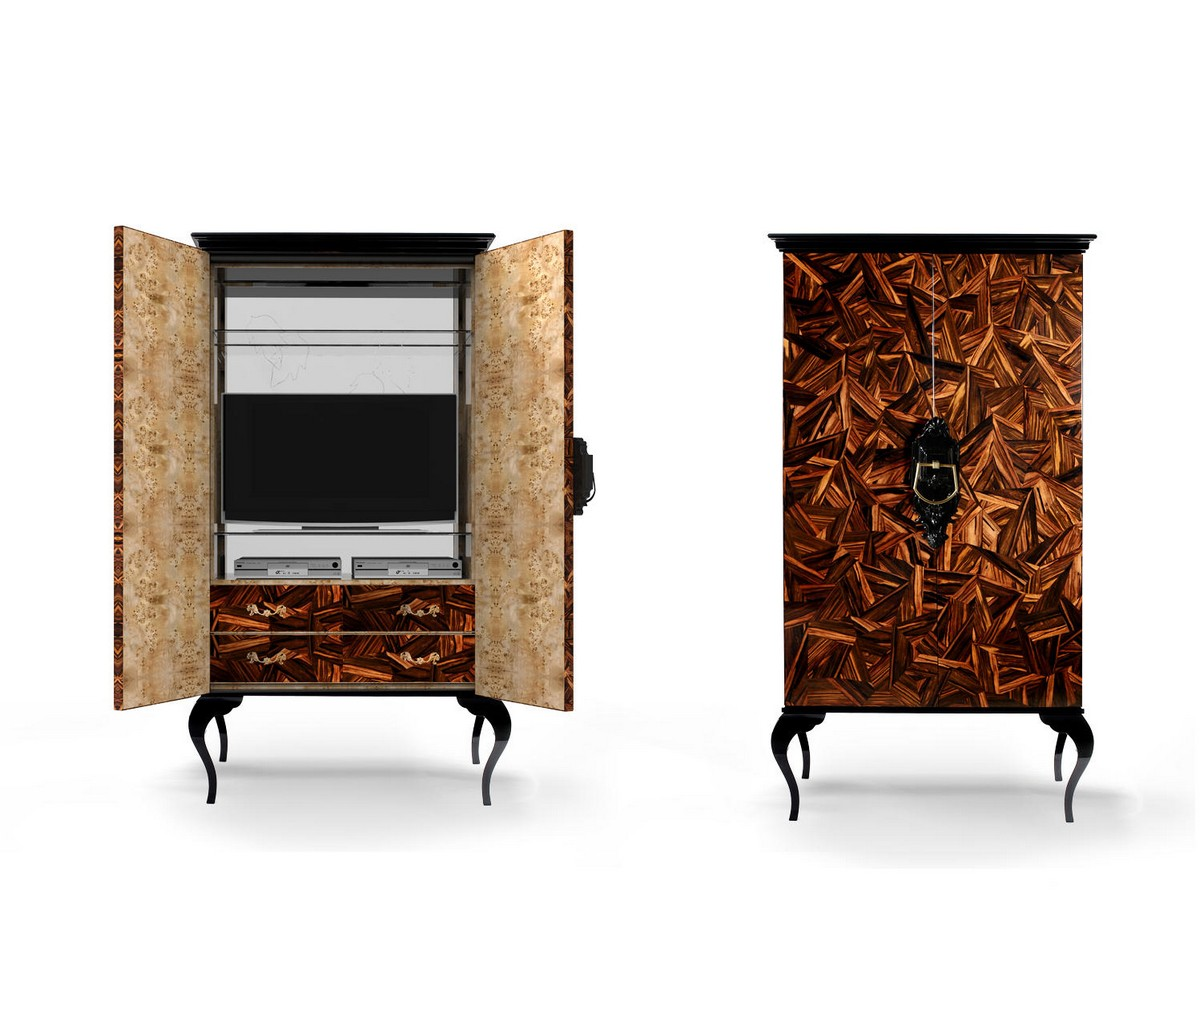 Exclusive Cabinets: When Classic Meets Contemporary